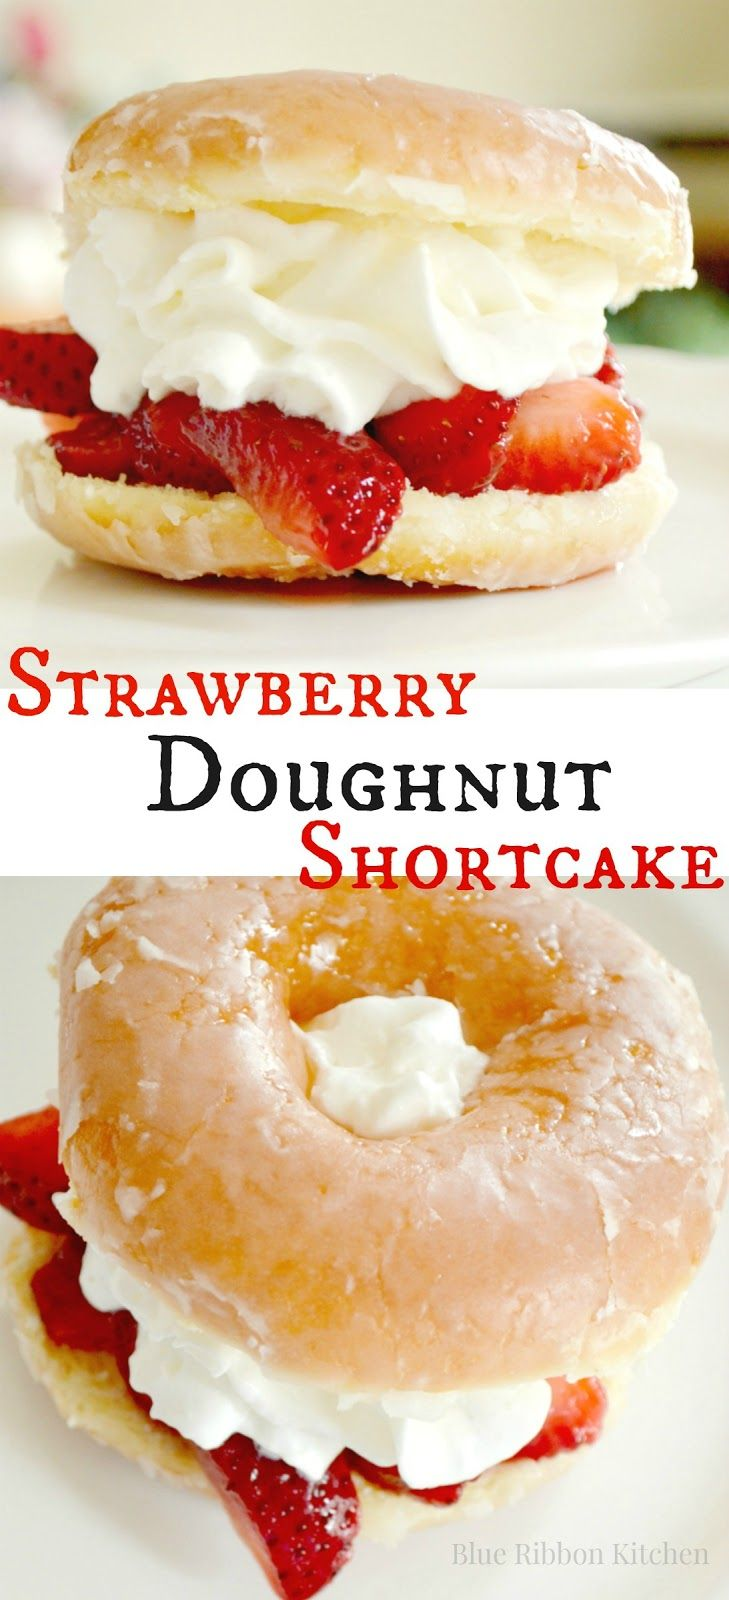 Blue Ribbon Kitchen makes a strawberry shortcake from a glazed doughnut and whipped cream! Best summertime dessert ever. Summer Delicious Easy Dessert #donutcake